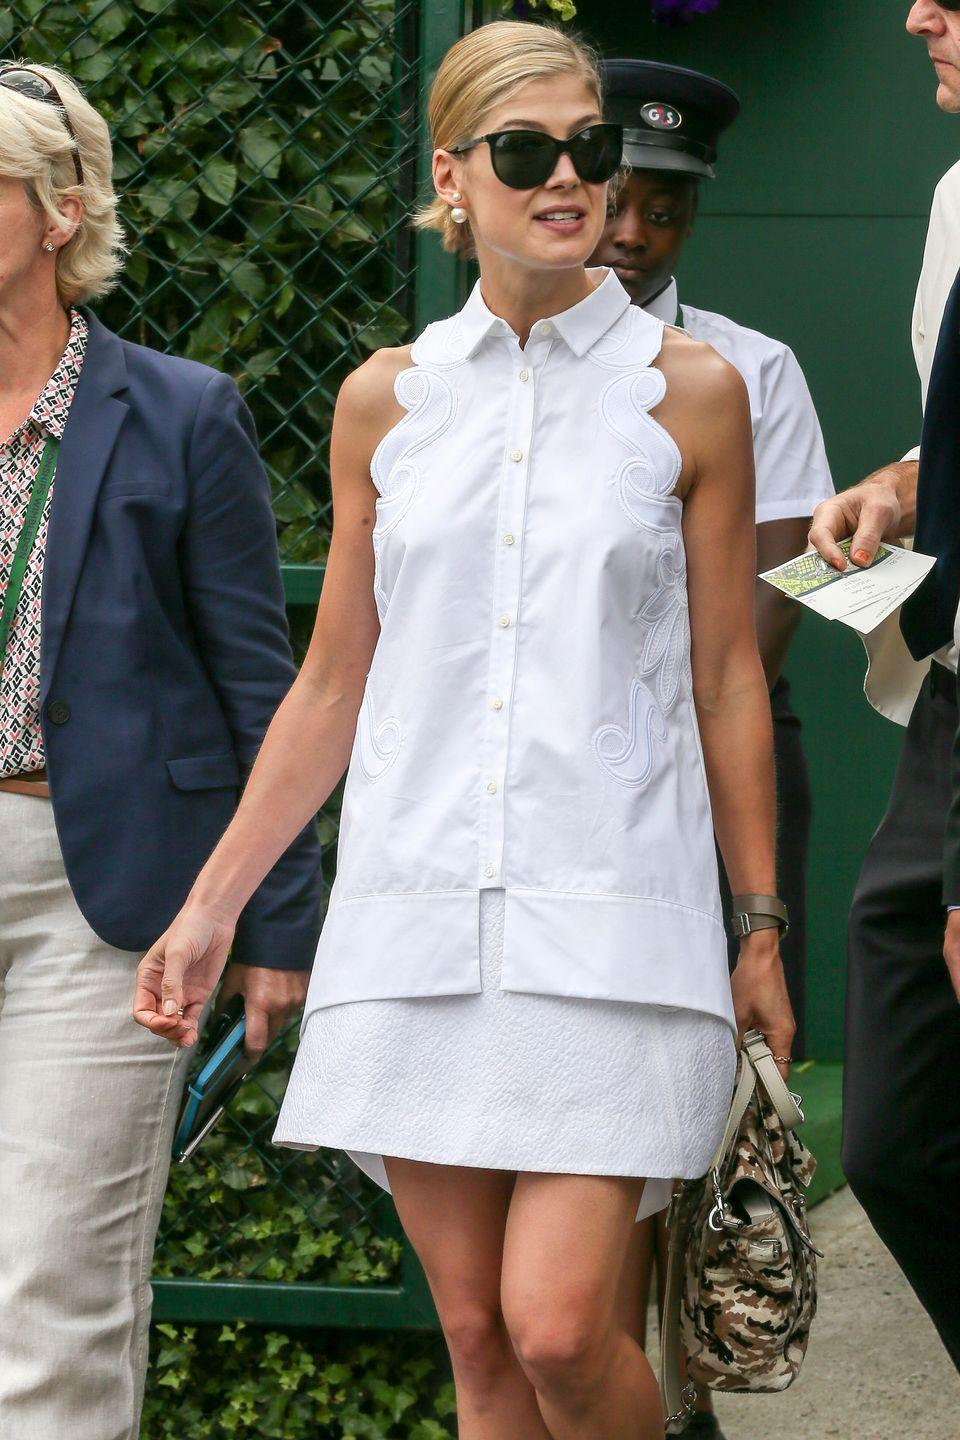 <p><strong>2015</strong> Rosamund Pike was pictured wearing a scalloped white shirt dress by Antonio Berardi.</p>